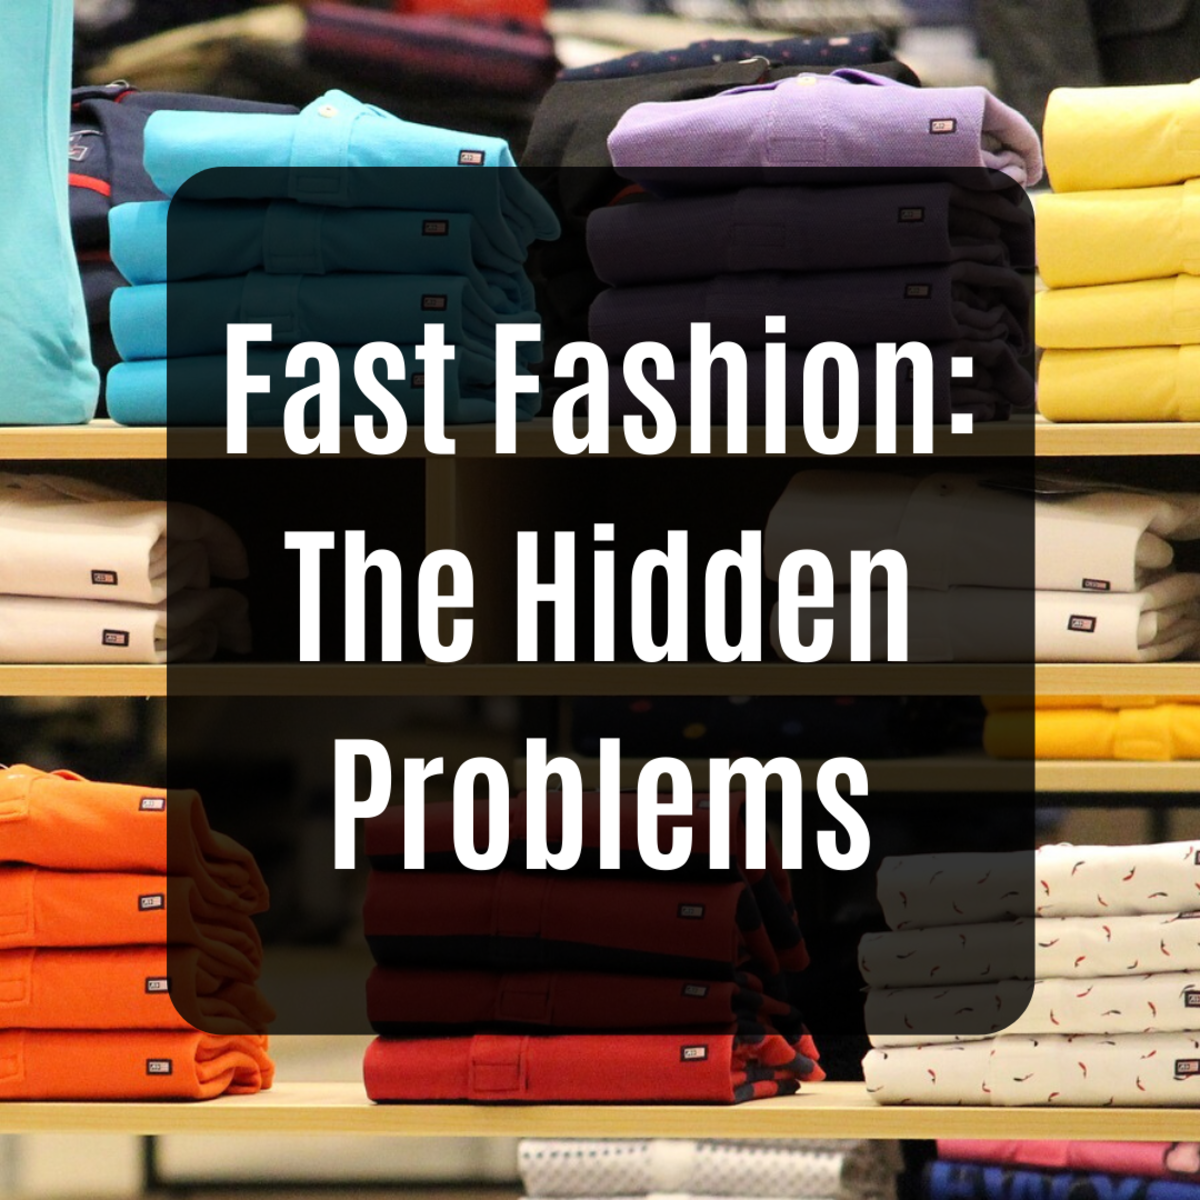 Discover some of the ugly truths behind the fast fashion industry.